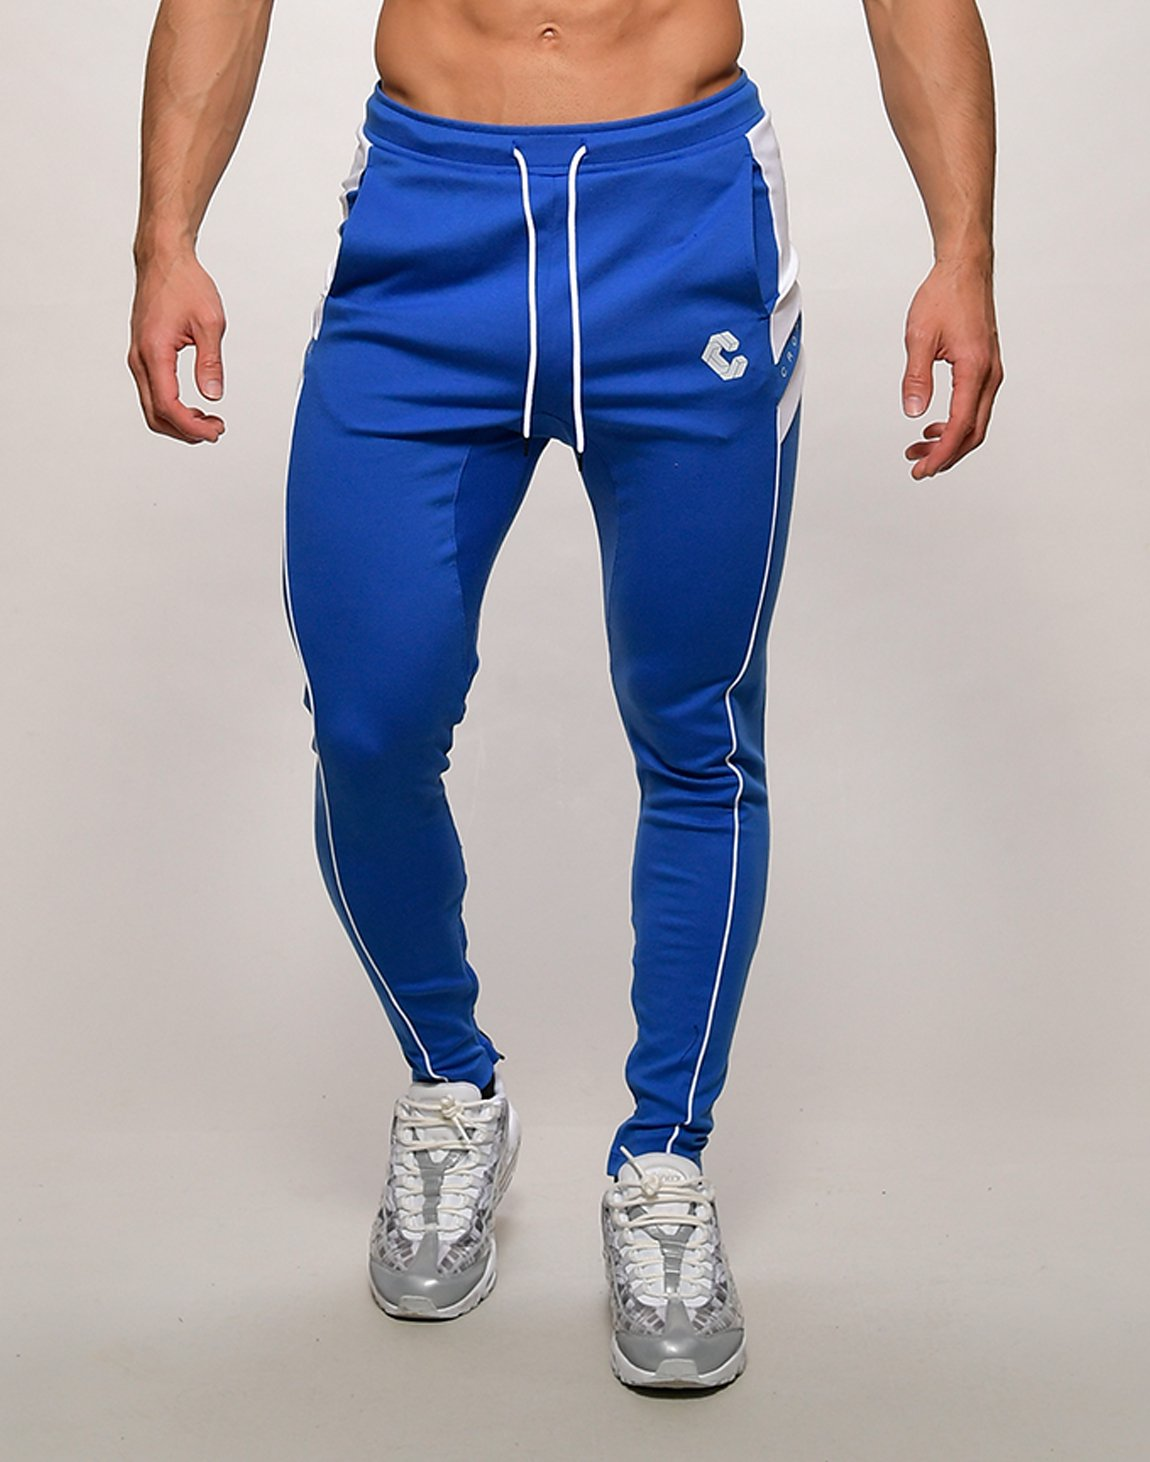 <img class='new_mark_img1' src='https://img.shop-pro.jp/img/new/icons1.gif' style='border:none;display:inline;margin:0px;padding:0px;width:auto;' />CRONOS NARROW SWEAT PANTS【BLUE】